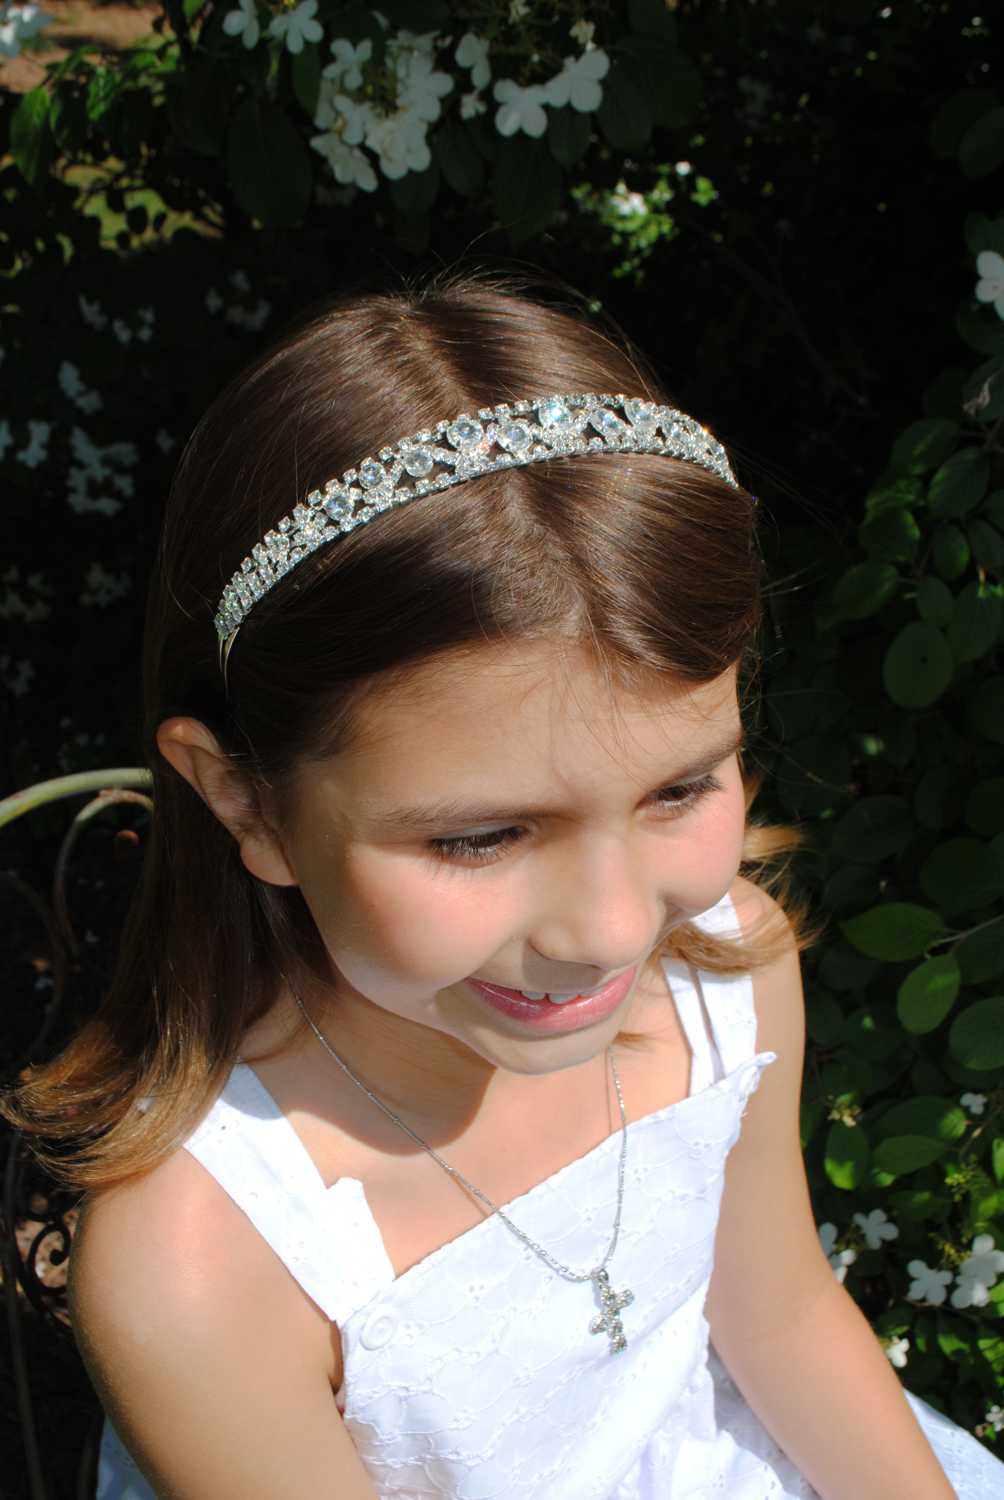 Rhinestone with Crystal Hair Band-Five Line Rhinestone Design Head Band, first communion headbands rhinestone, flower girl rhinestone headbands, Rhinestone with Crystal Hair Band